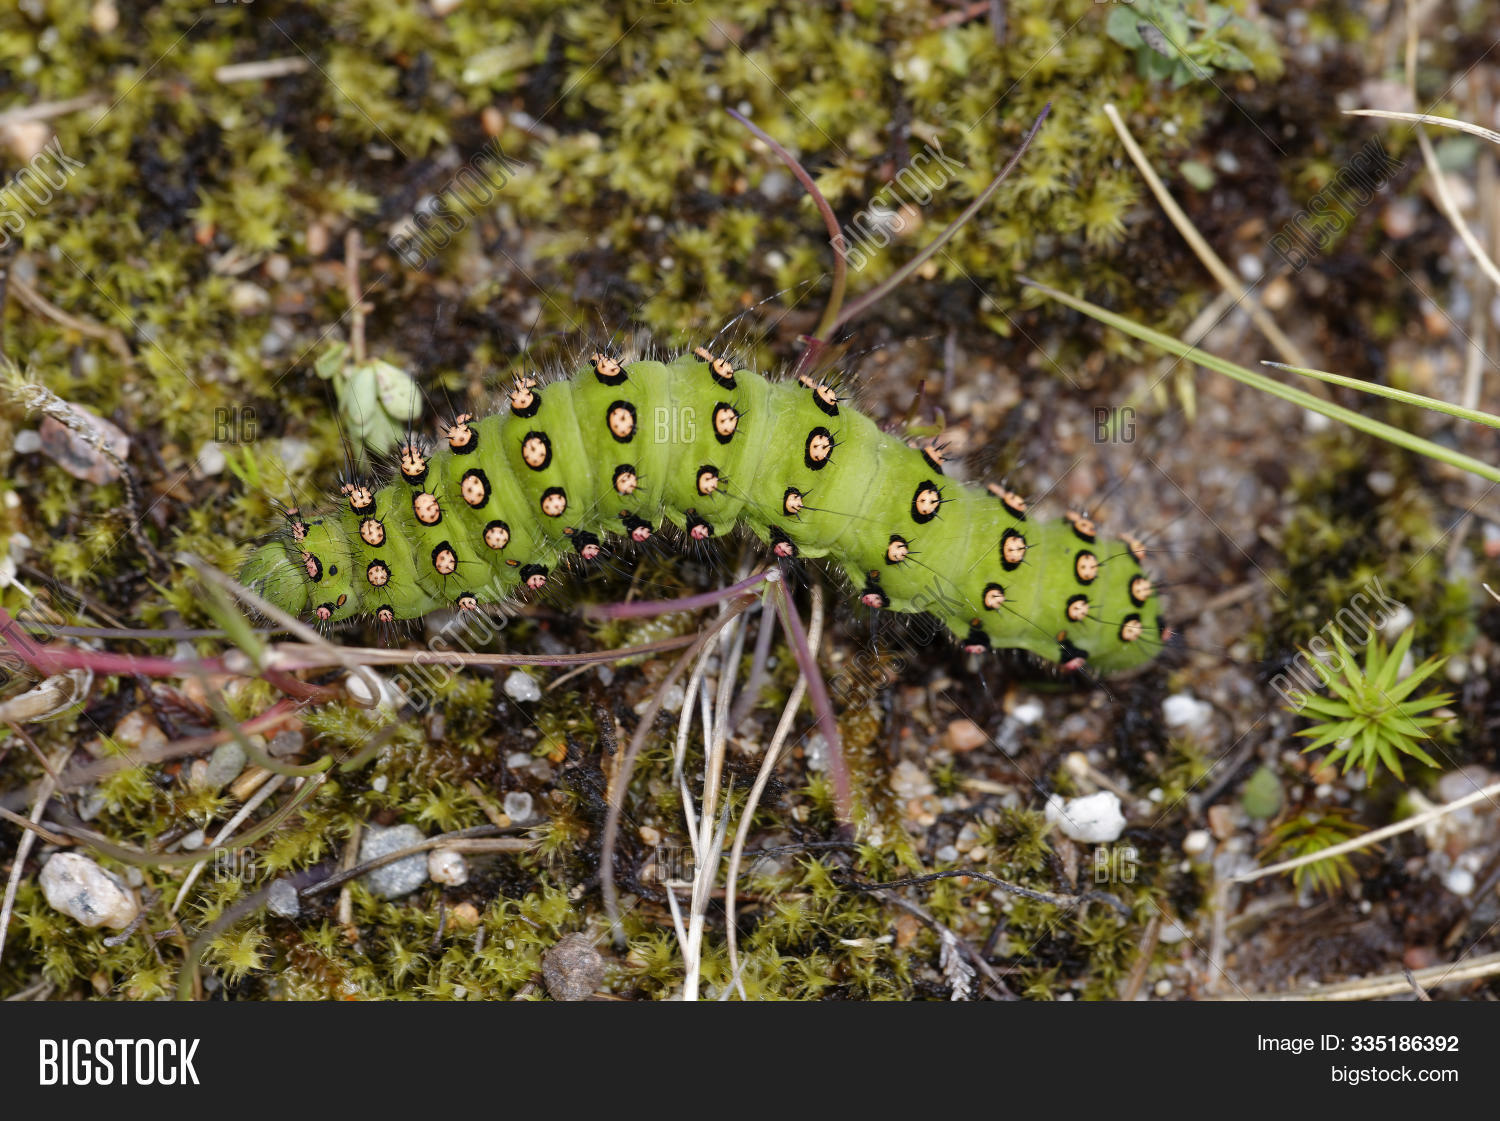 Britain,British,Caterpillar,Emperor,Green,Hairy,Heath,Highland,Horizontal,Insect,Landscape,Large,Larvae,Lepidoptera,Moor,Moorland,Moth,Nature,Saturnia,Saturniidae,Scotland,Spikes,Spiney,Spots,Summer,UK,Wild,Wildlife,pavonia